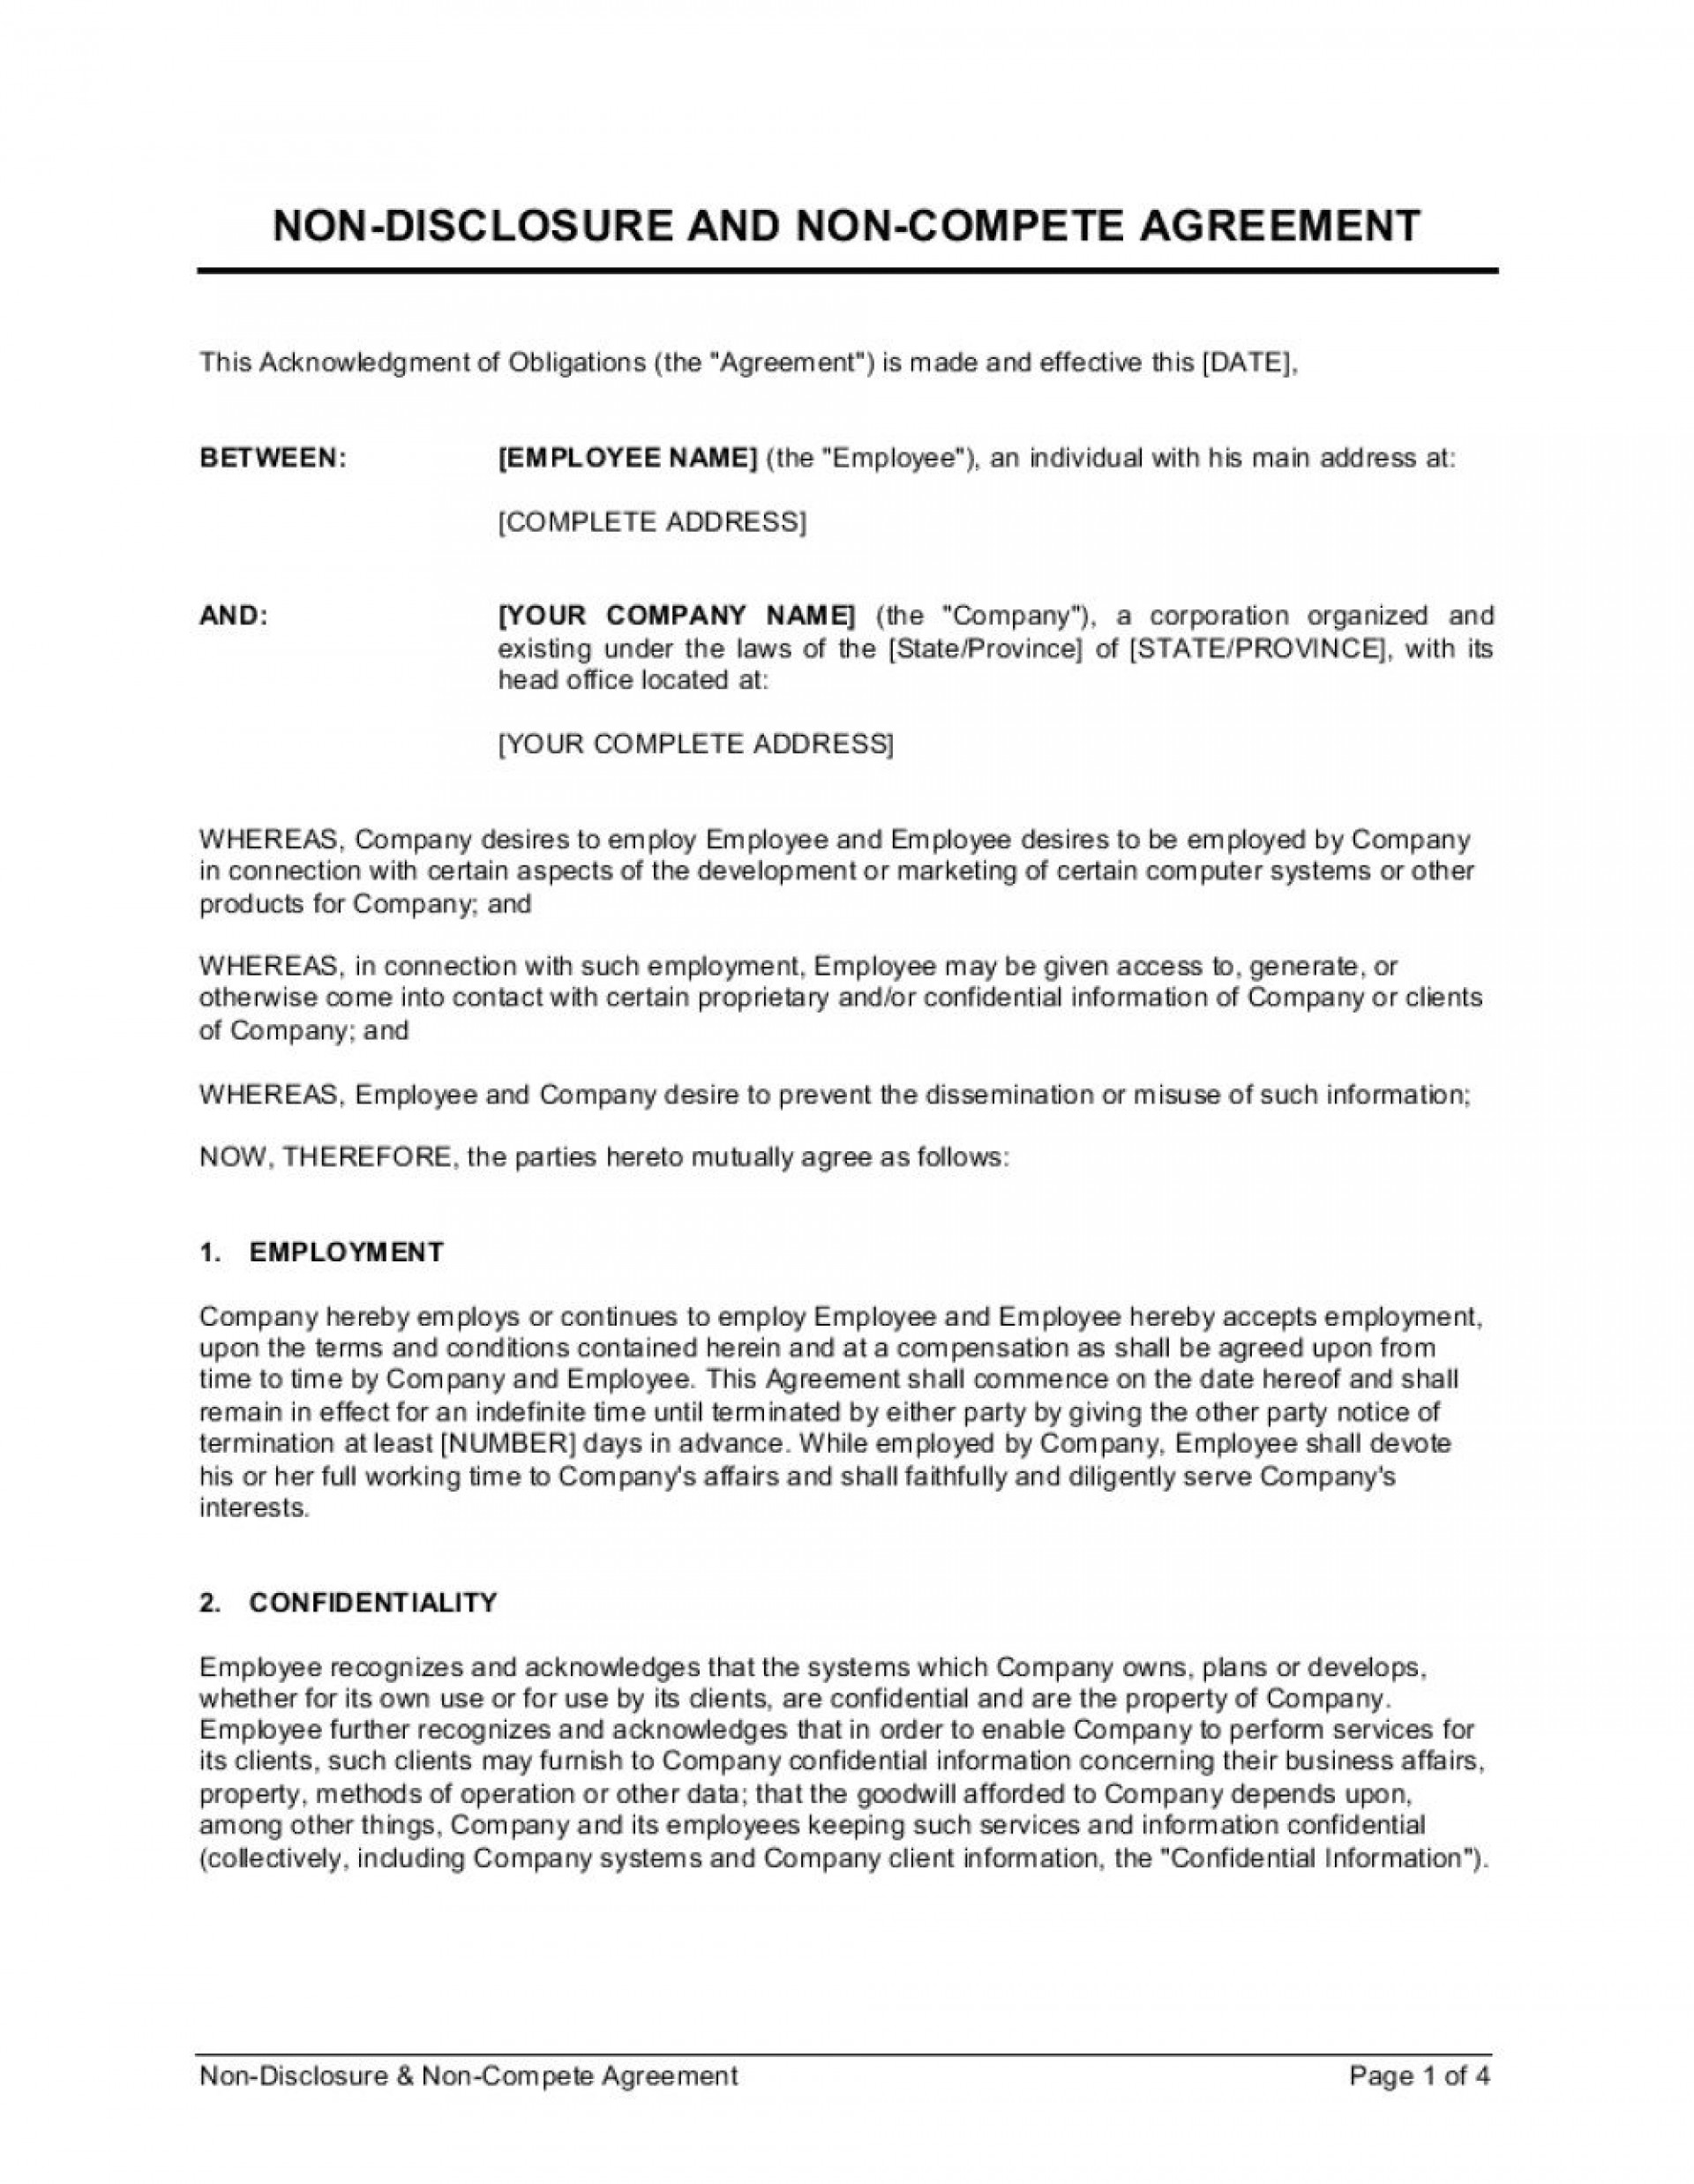 008 Archaicawful Employee Non Compete Agreement Template Example  Free Confidentiality Non-compete Disclosure1920